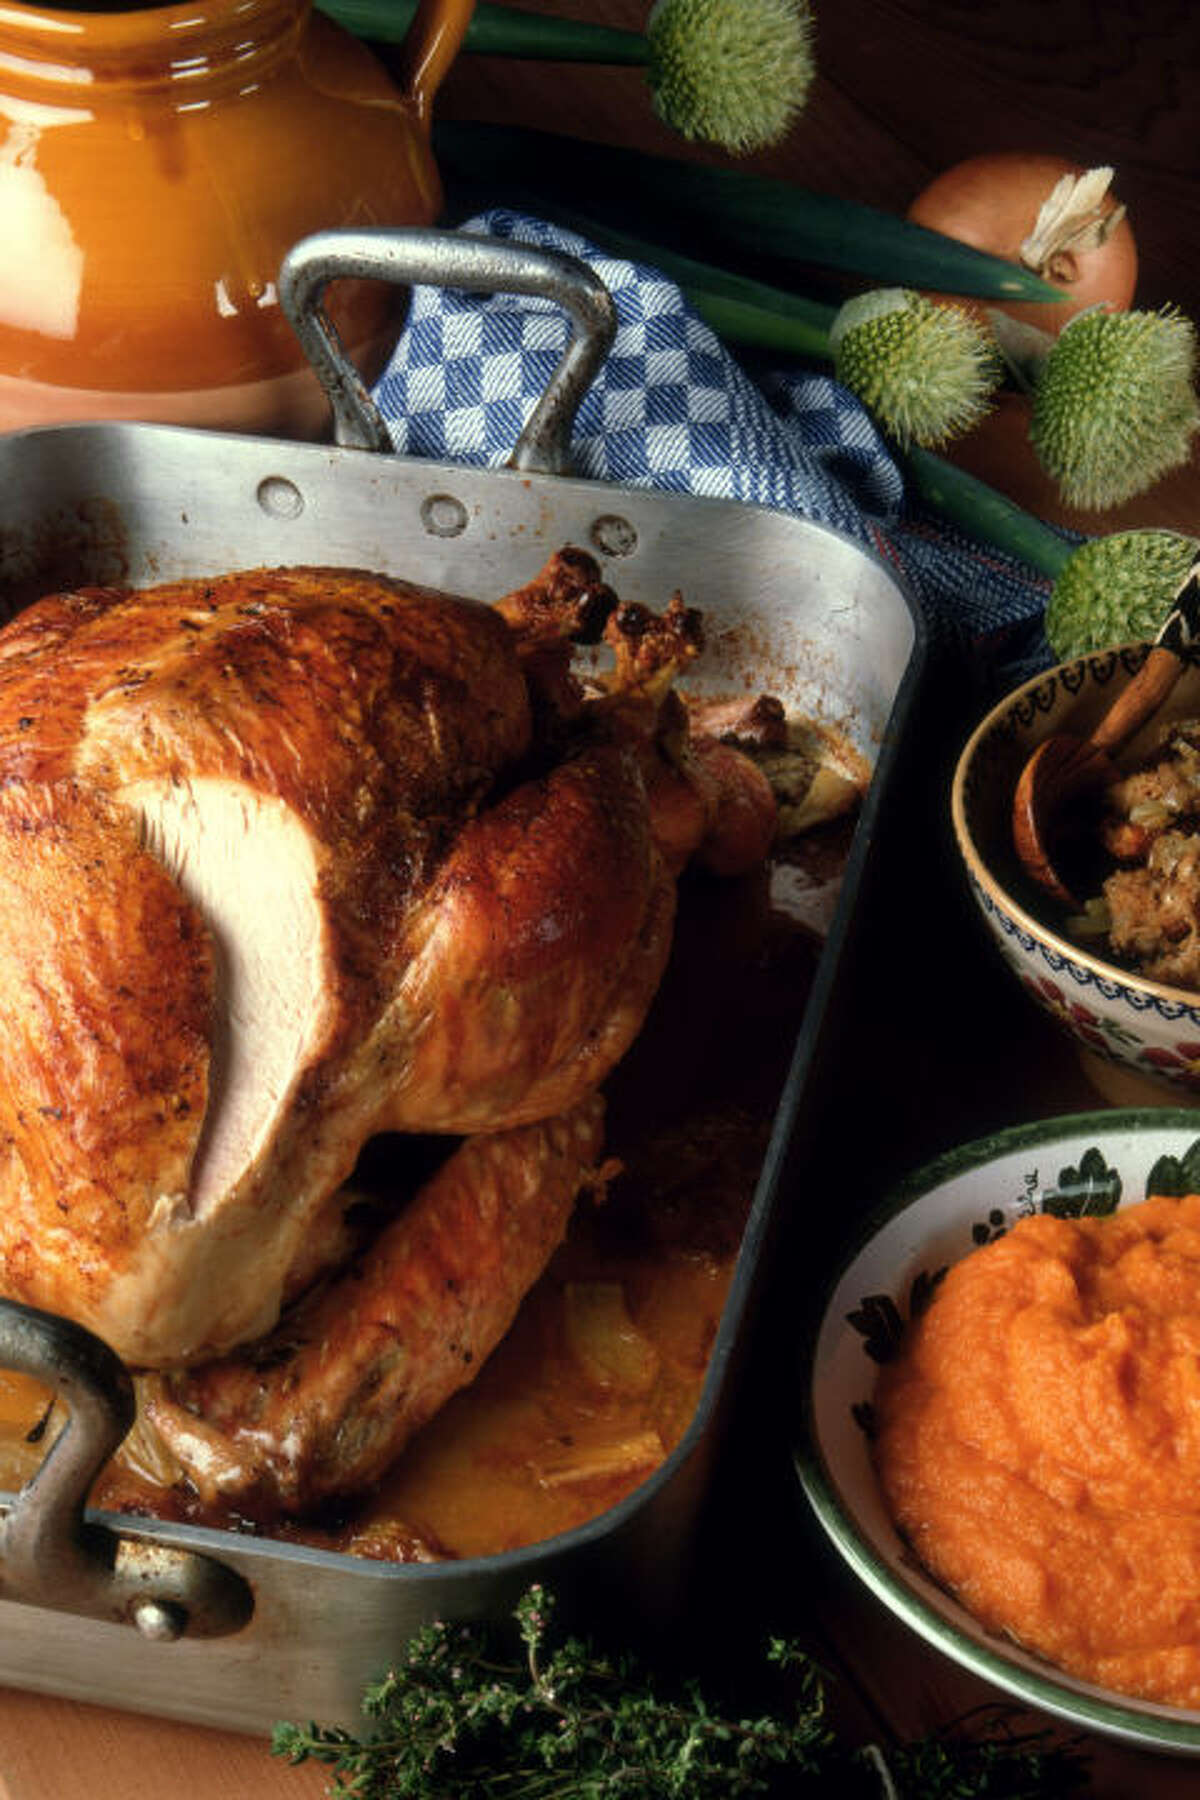 Make Thanksgiving dinner together: It's a huge undertaking, no doubt, when you consider the turkey, appetizers, side dishes, desserts and the tablescape. But doing it together - with a bangin' Spotify playlist - will make it feel like a party. (Plus, it's a sneaky way to pass on all your tricks so she can take the reins next year!) The best holiday gifts for 2017 »